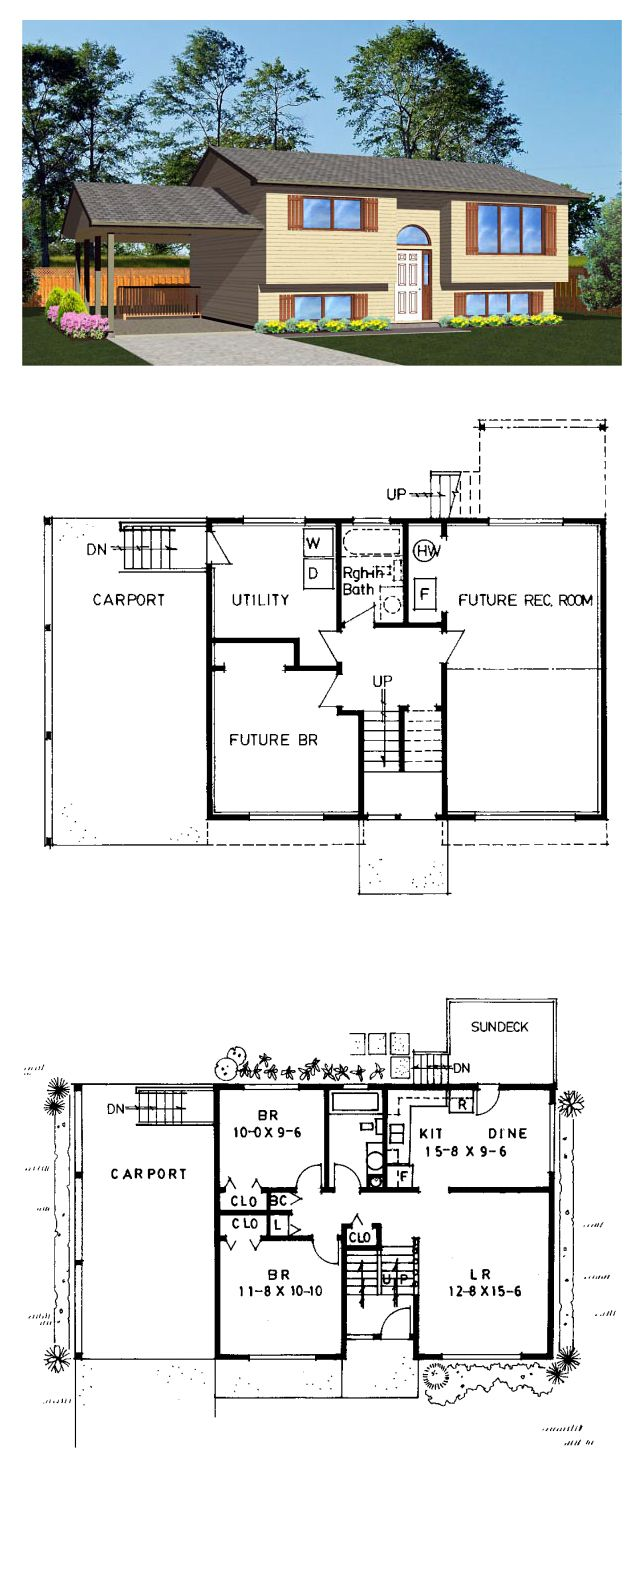 Retro Style House Plan 96221 With 2 Bed 1 Bath 1 Car Garage Floor Plans Saltbox Houses House Floor Plans